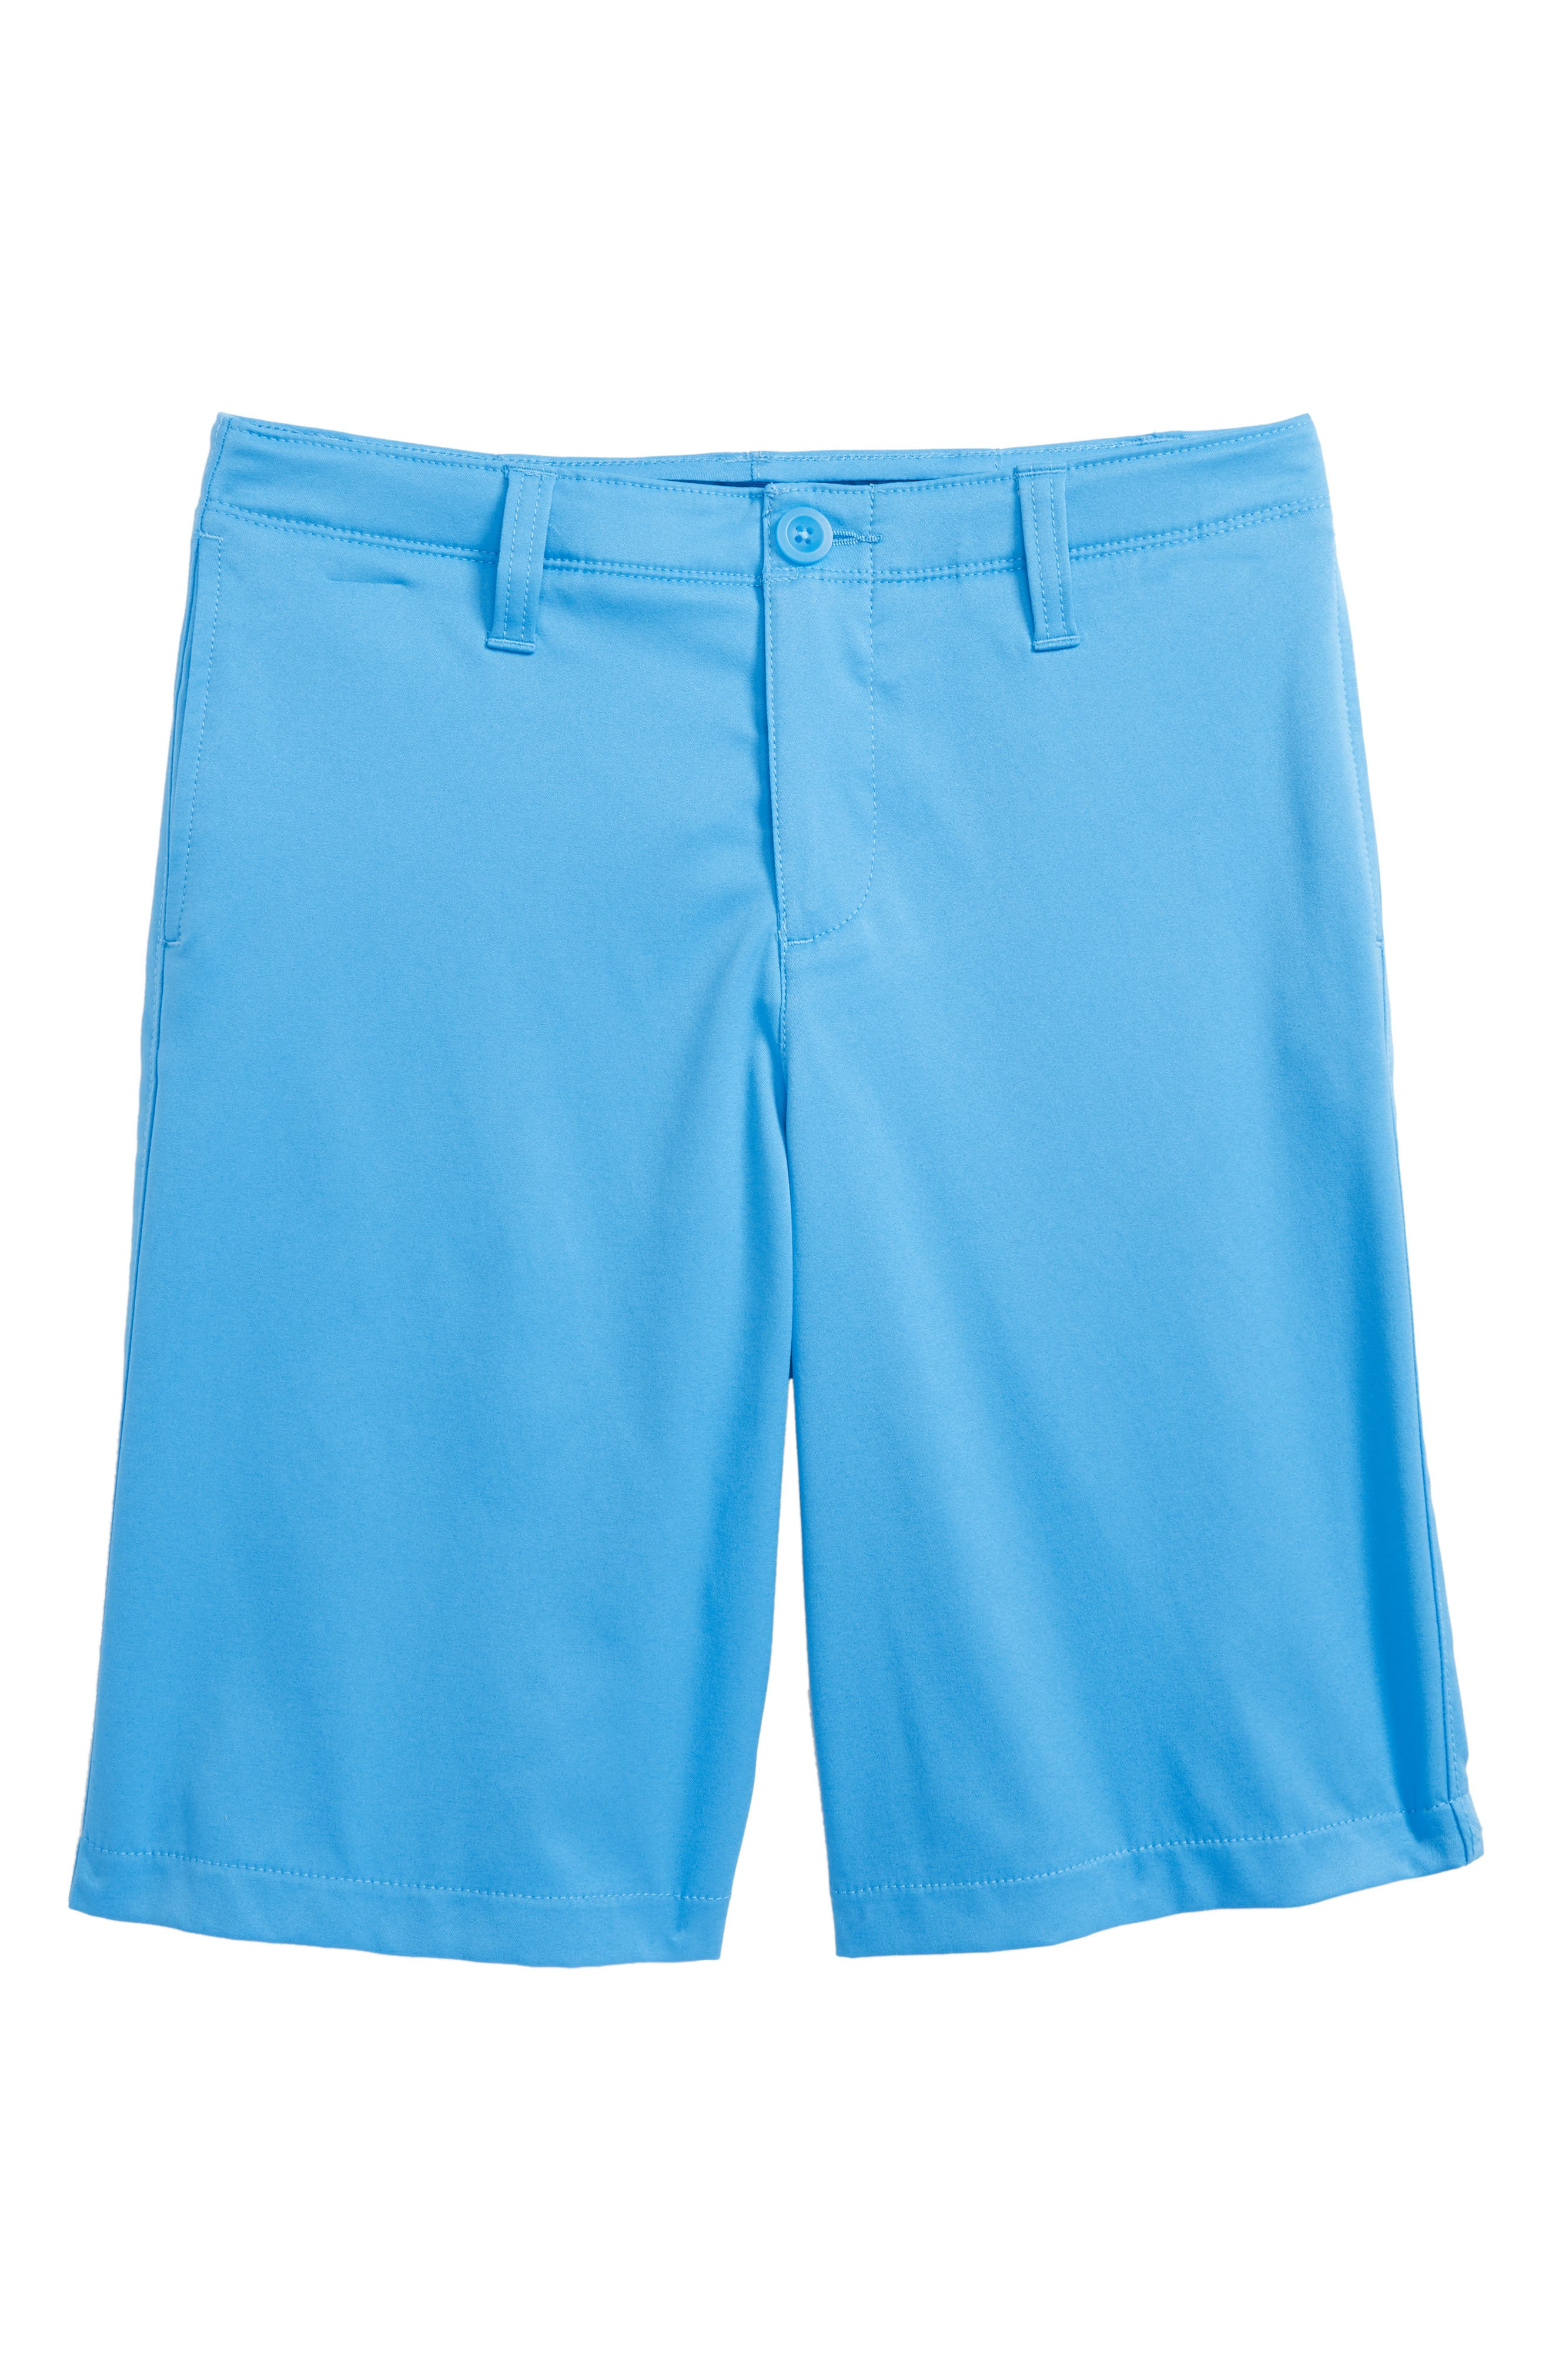 Match Play Shorts,                         Main,                         color, Canoe Blue/ Moroccan Blue